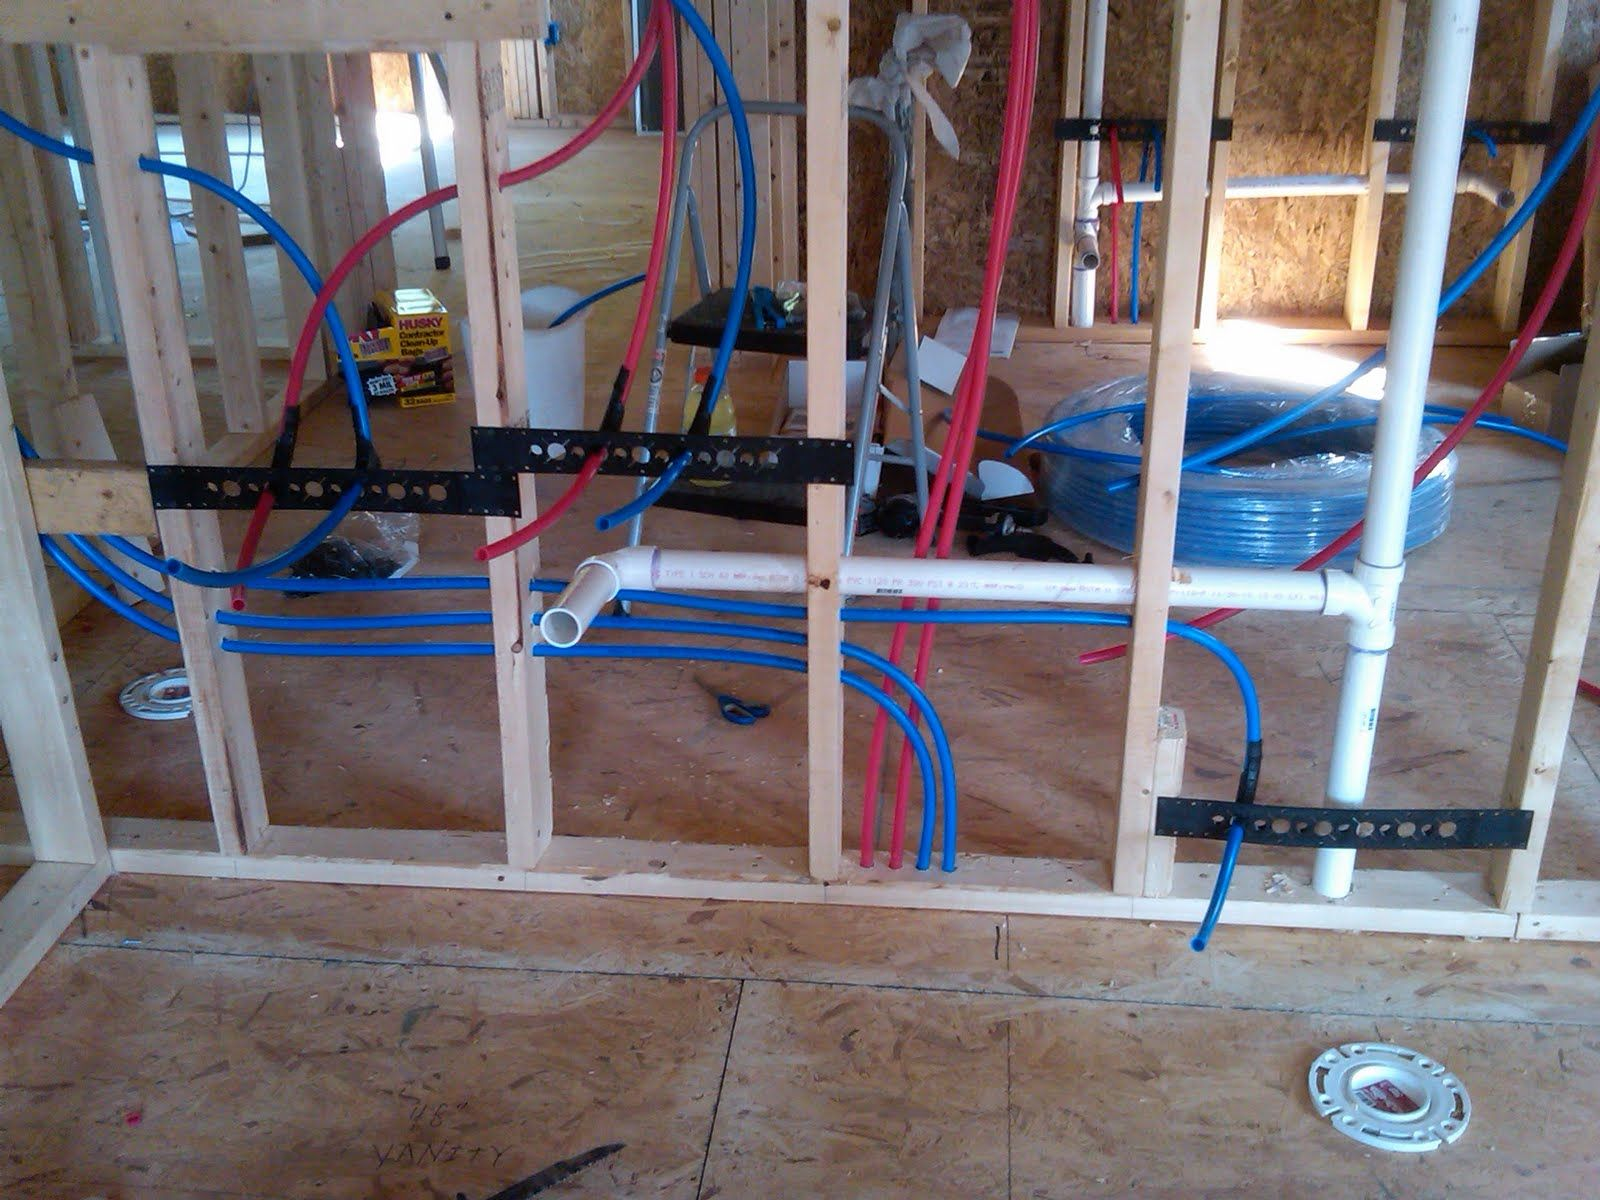 Plumbing pex water lines install for toilet sinks for Plumbing a new house